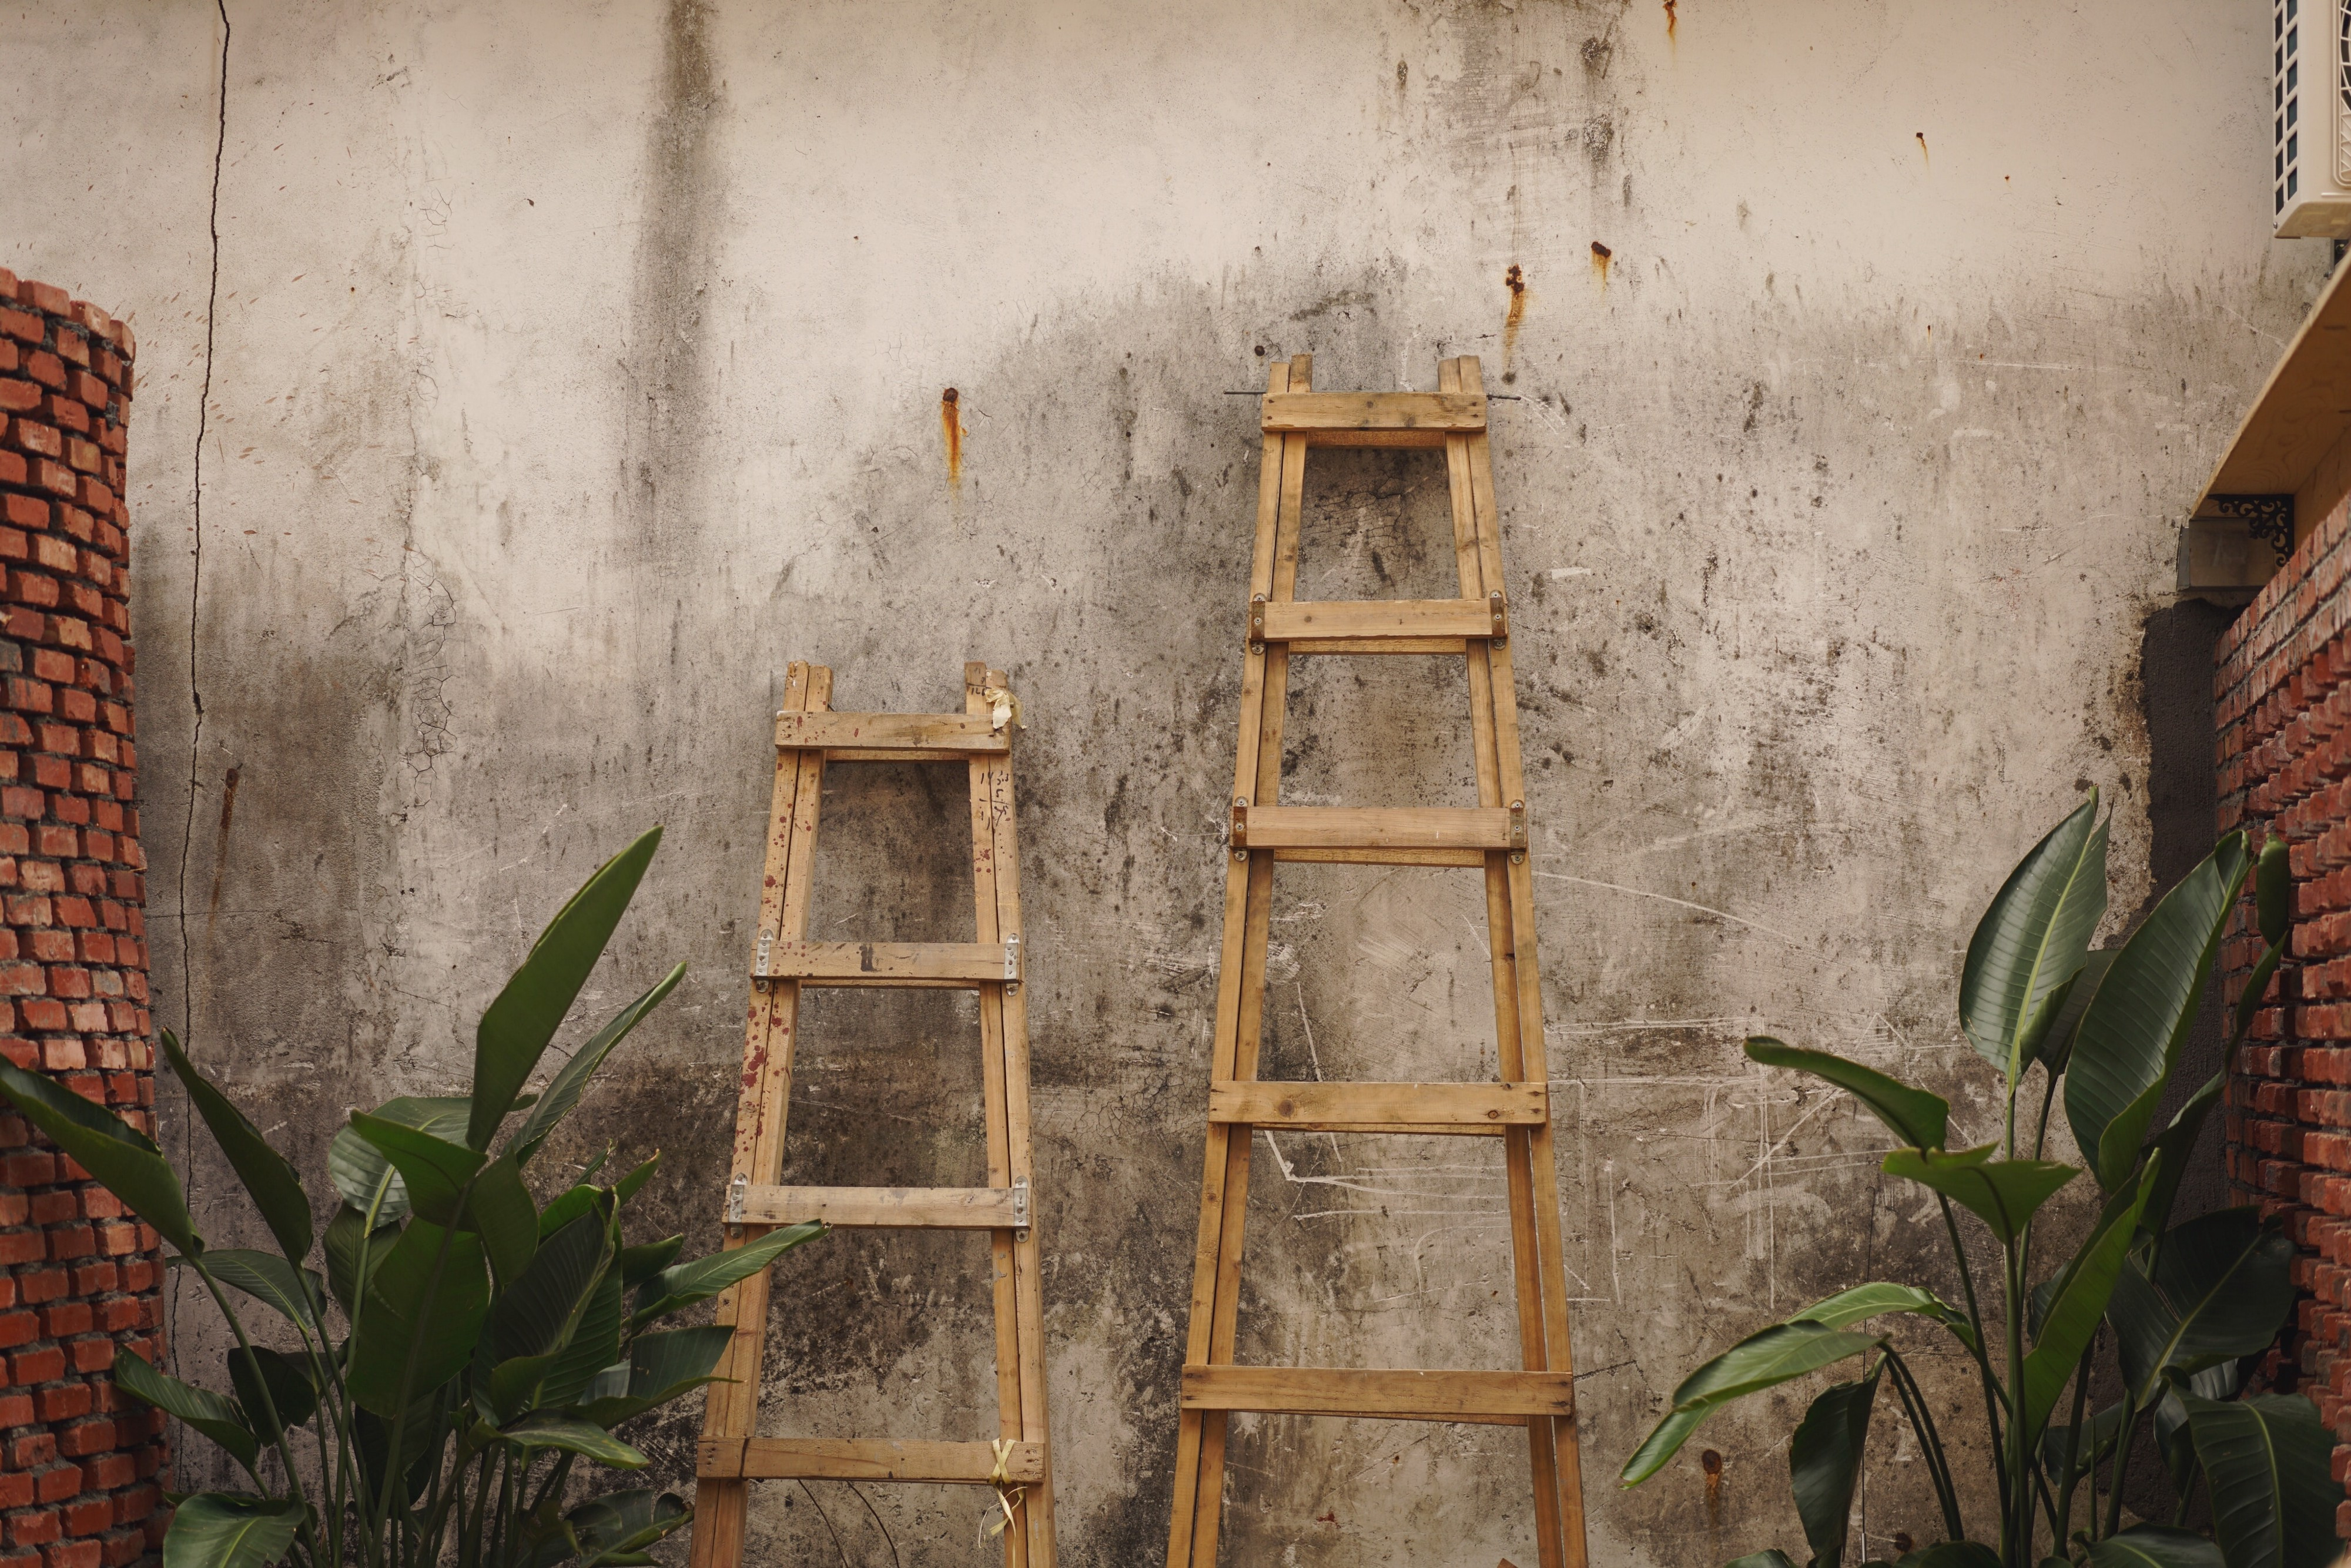 Two wooden ladders leaning against a cement wall, with brick walls and plants to each side